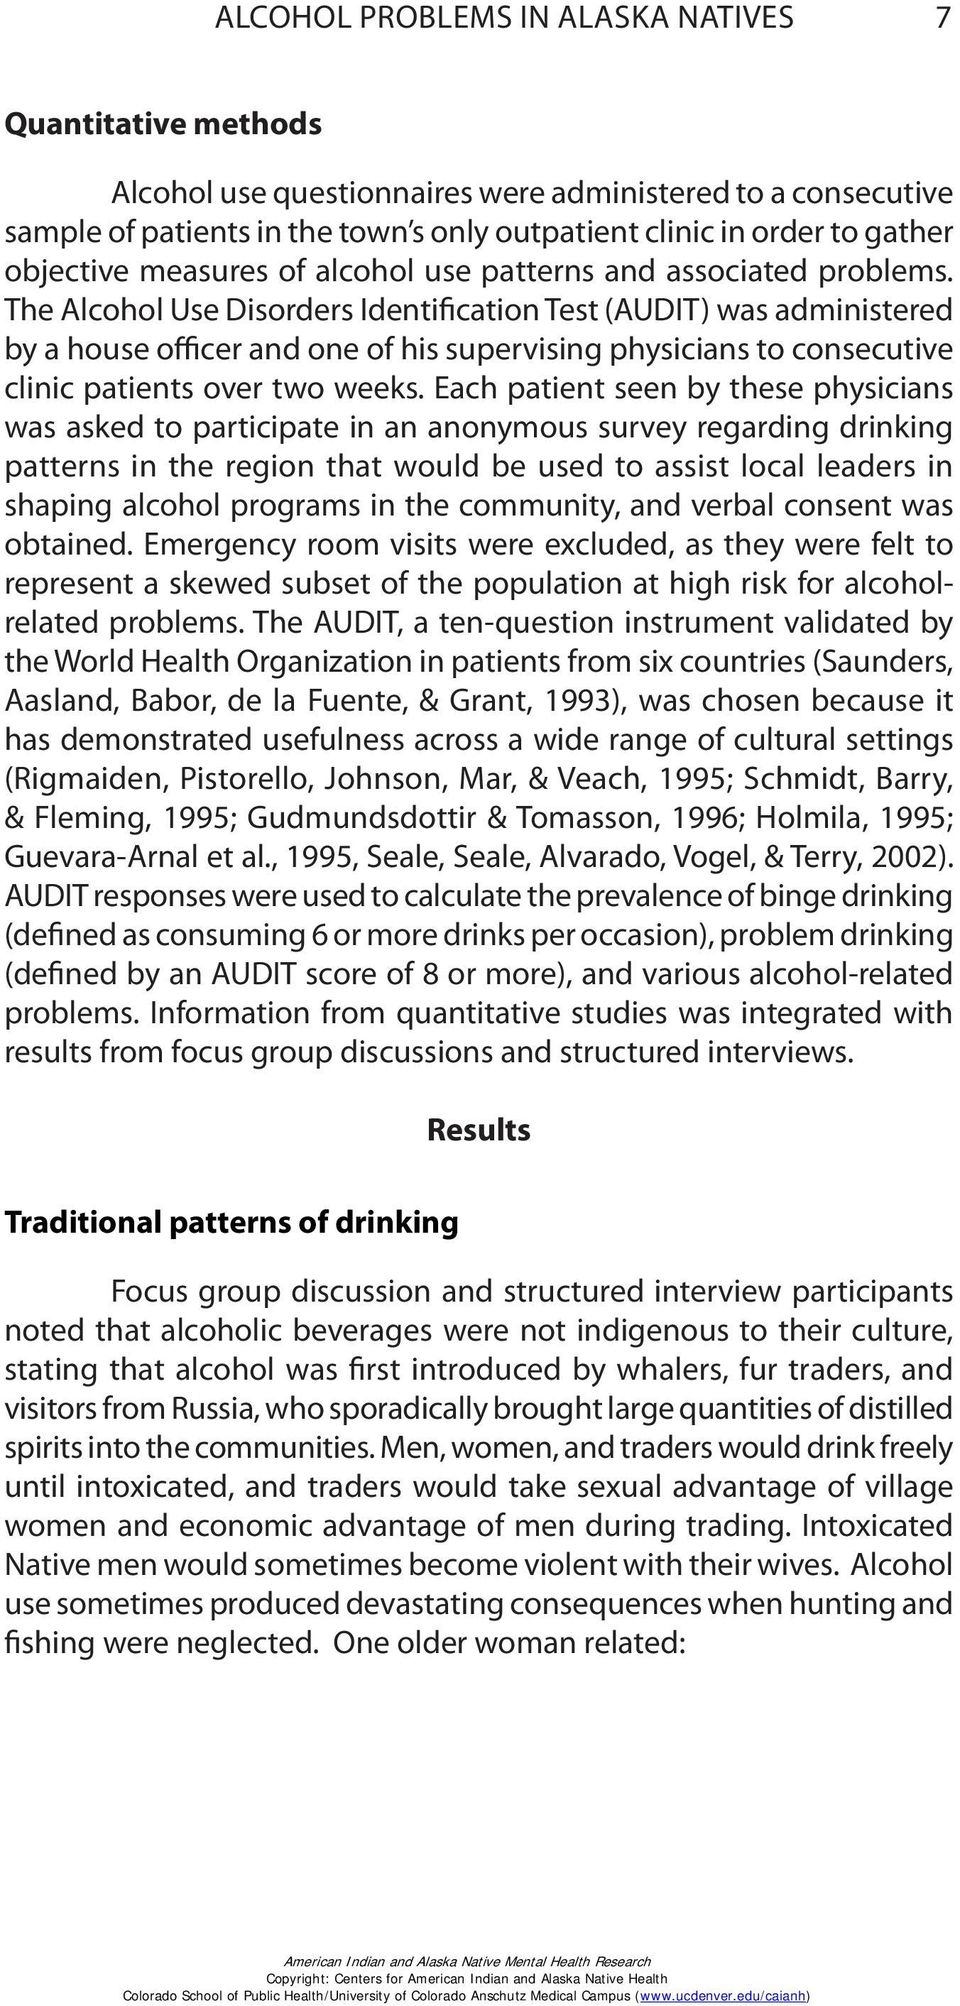 The Alcohol Use Disorders Identification Test (AUDIT) was administered by a house officer and one of his supervising physicians to consecutive clinic patients over two weeks.